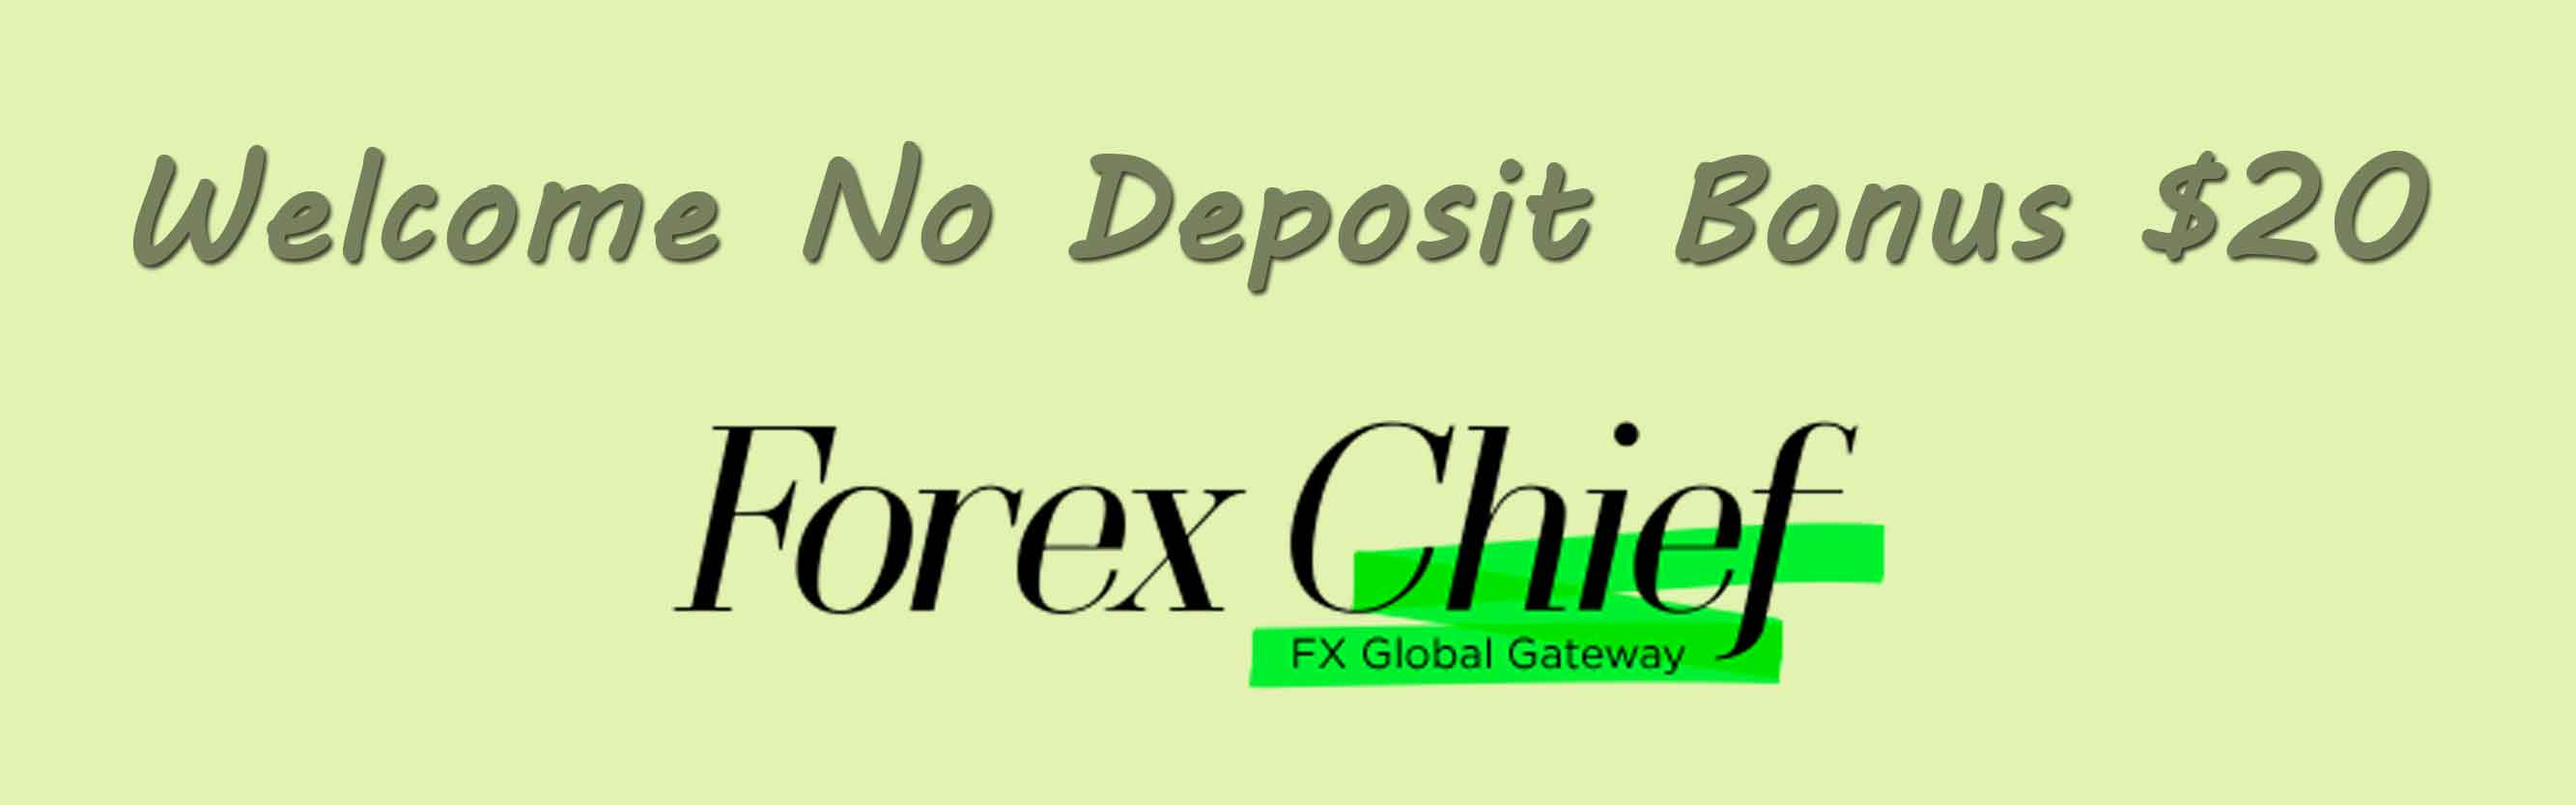 Forex bonus without deposit